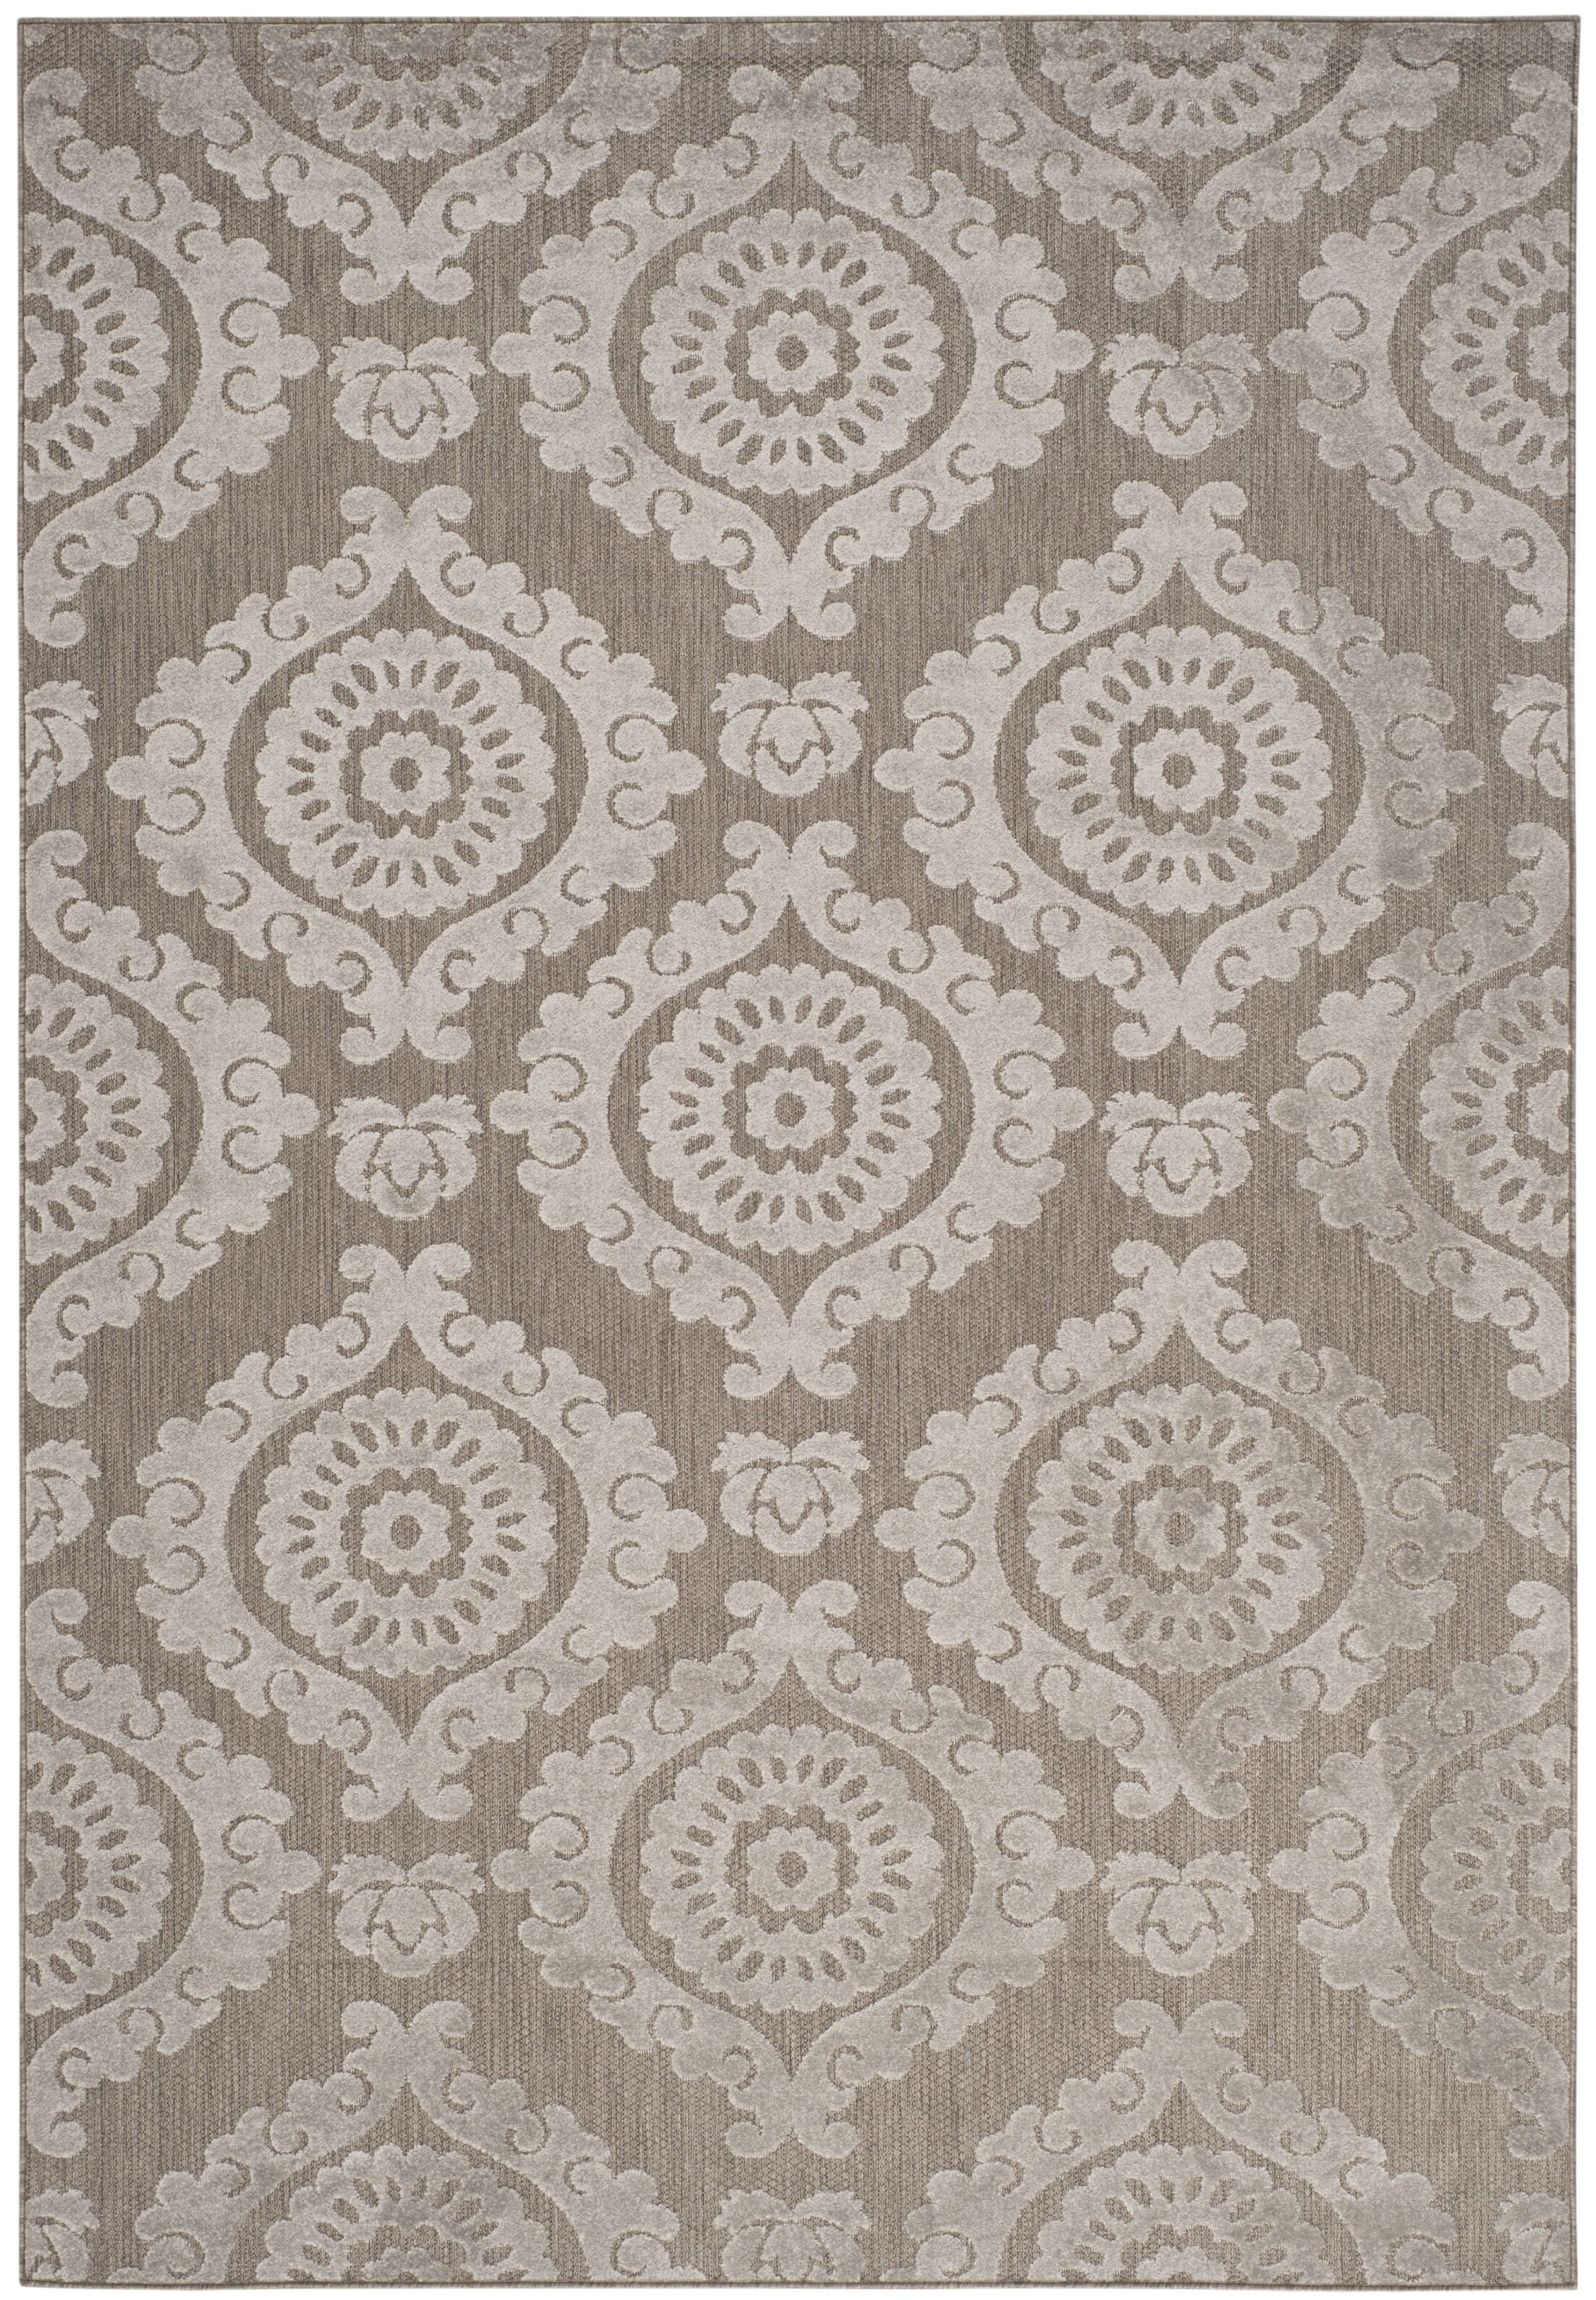 Hughes Suzani Taupe Indoor / Outdoor Area Rug Rug Size: Rectangle 5'3